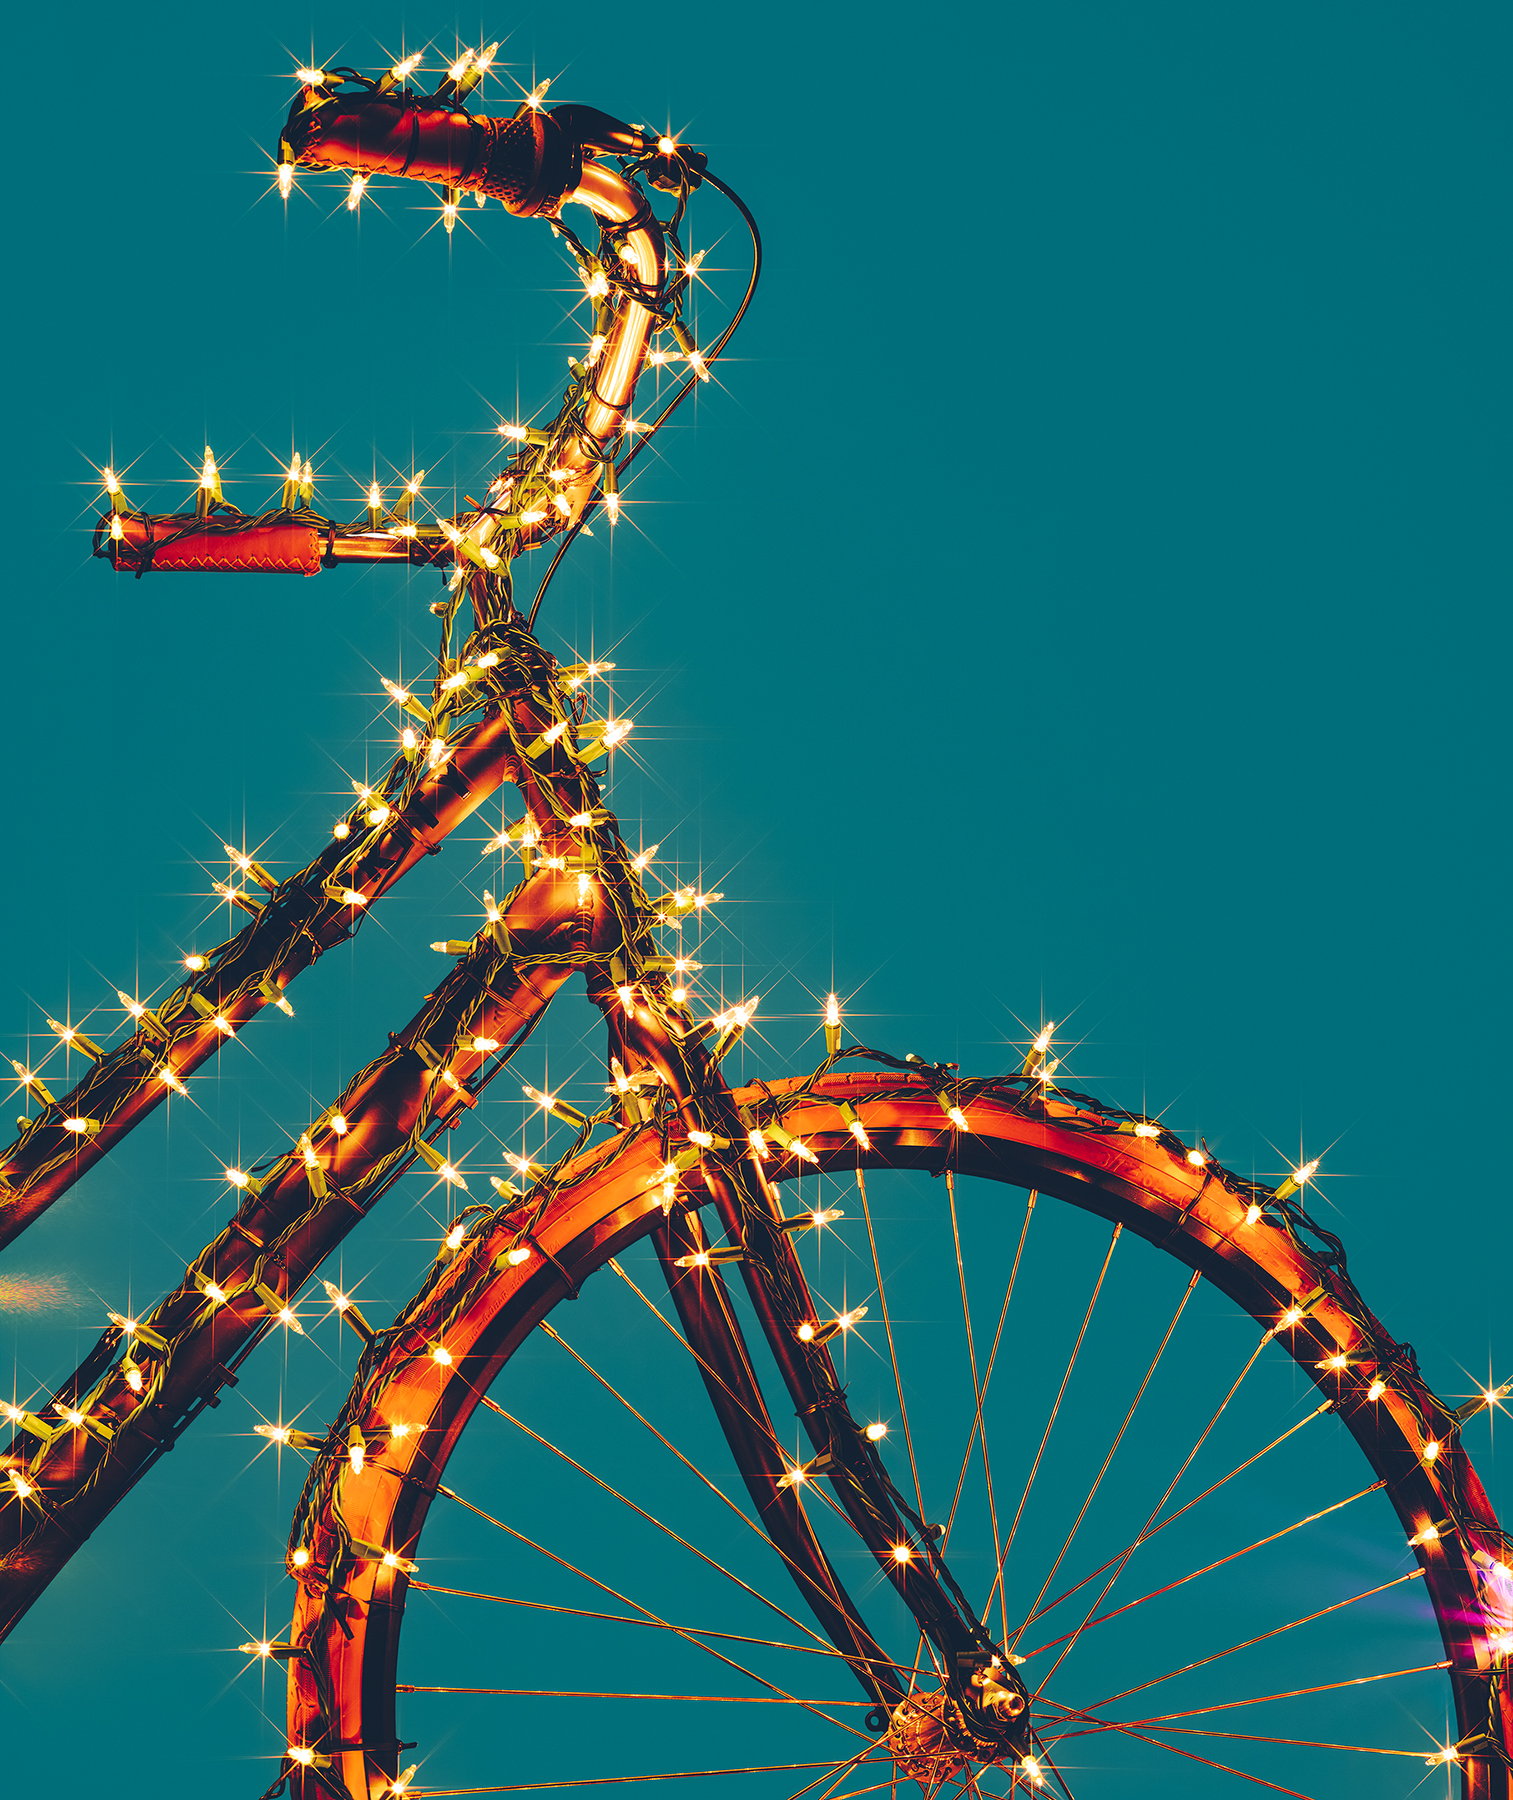 Bicycle wrapped in lights